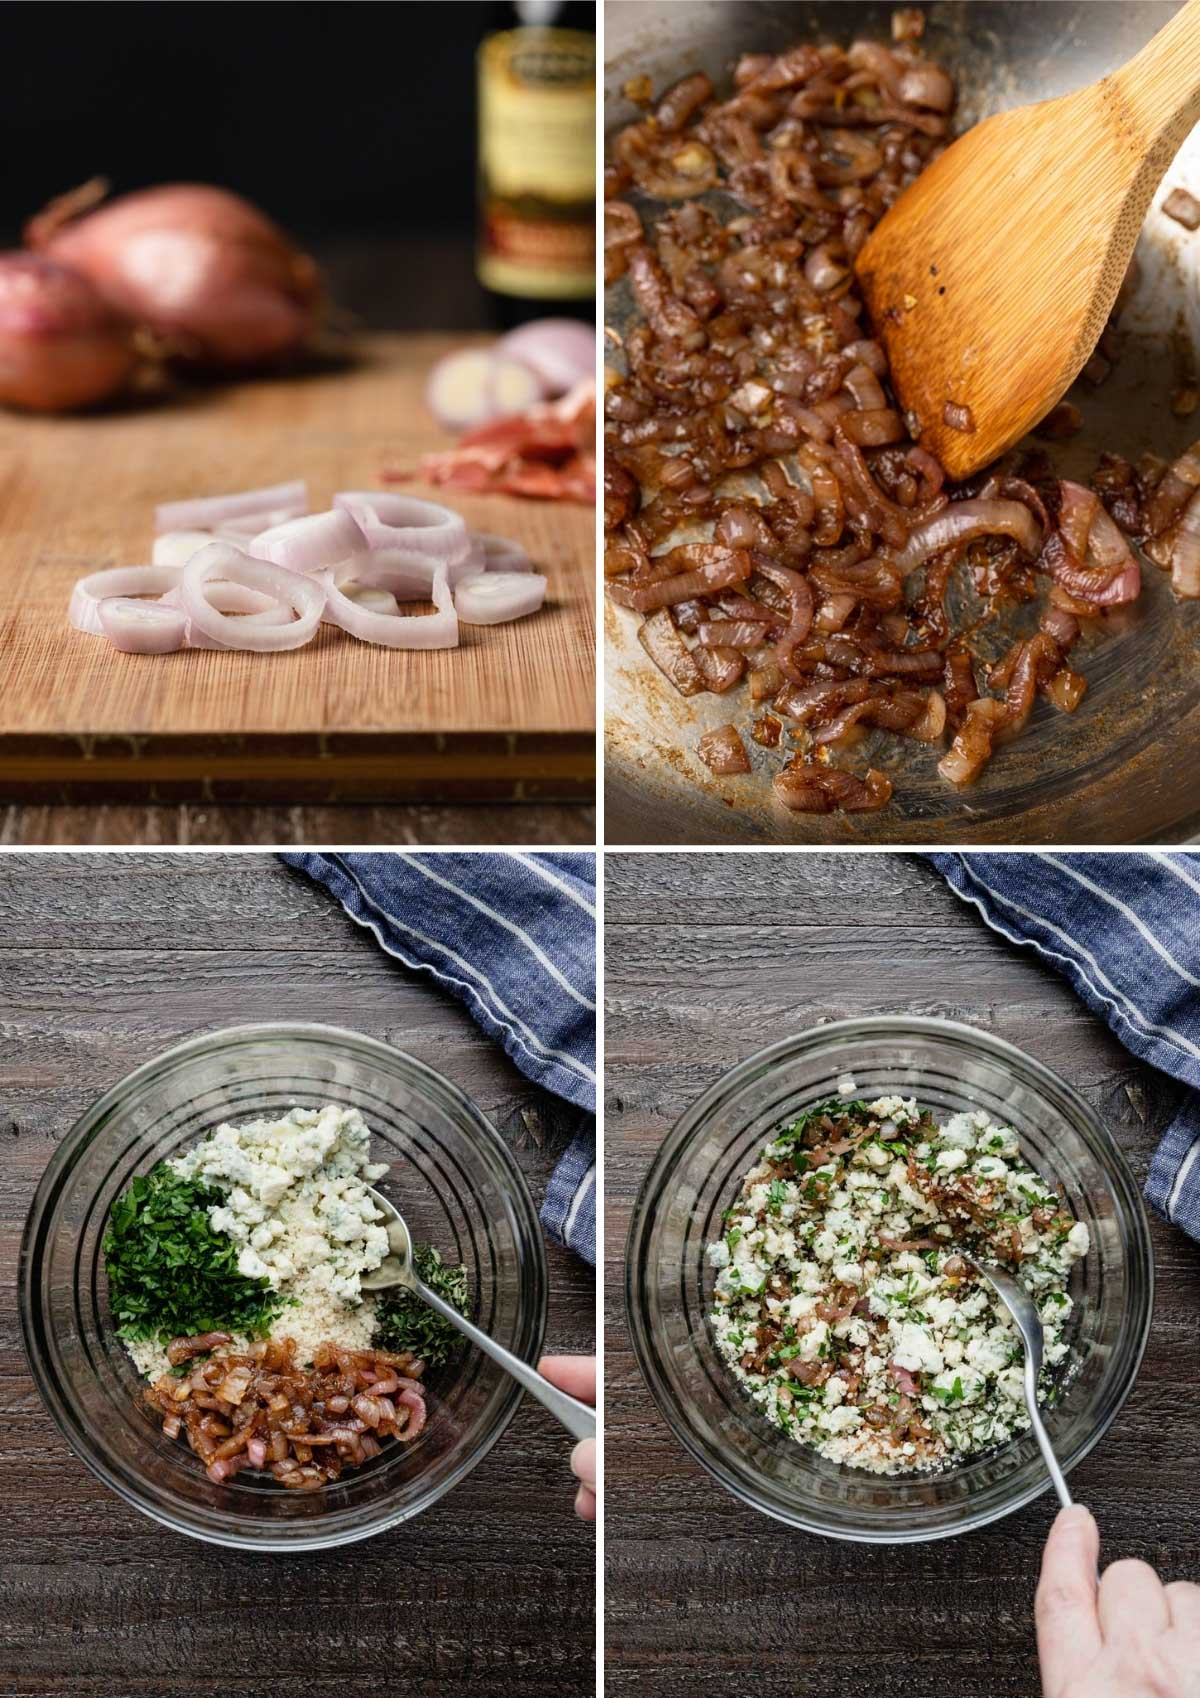 four photos showing the process of making a blue cheese crust with panko and caramelized shallots